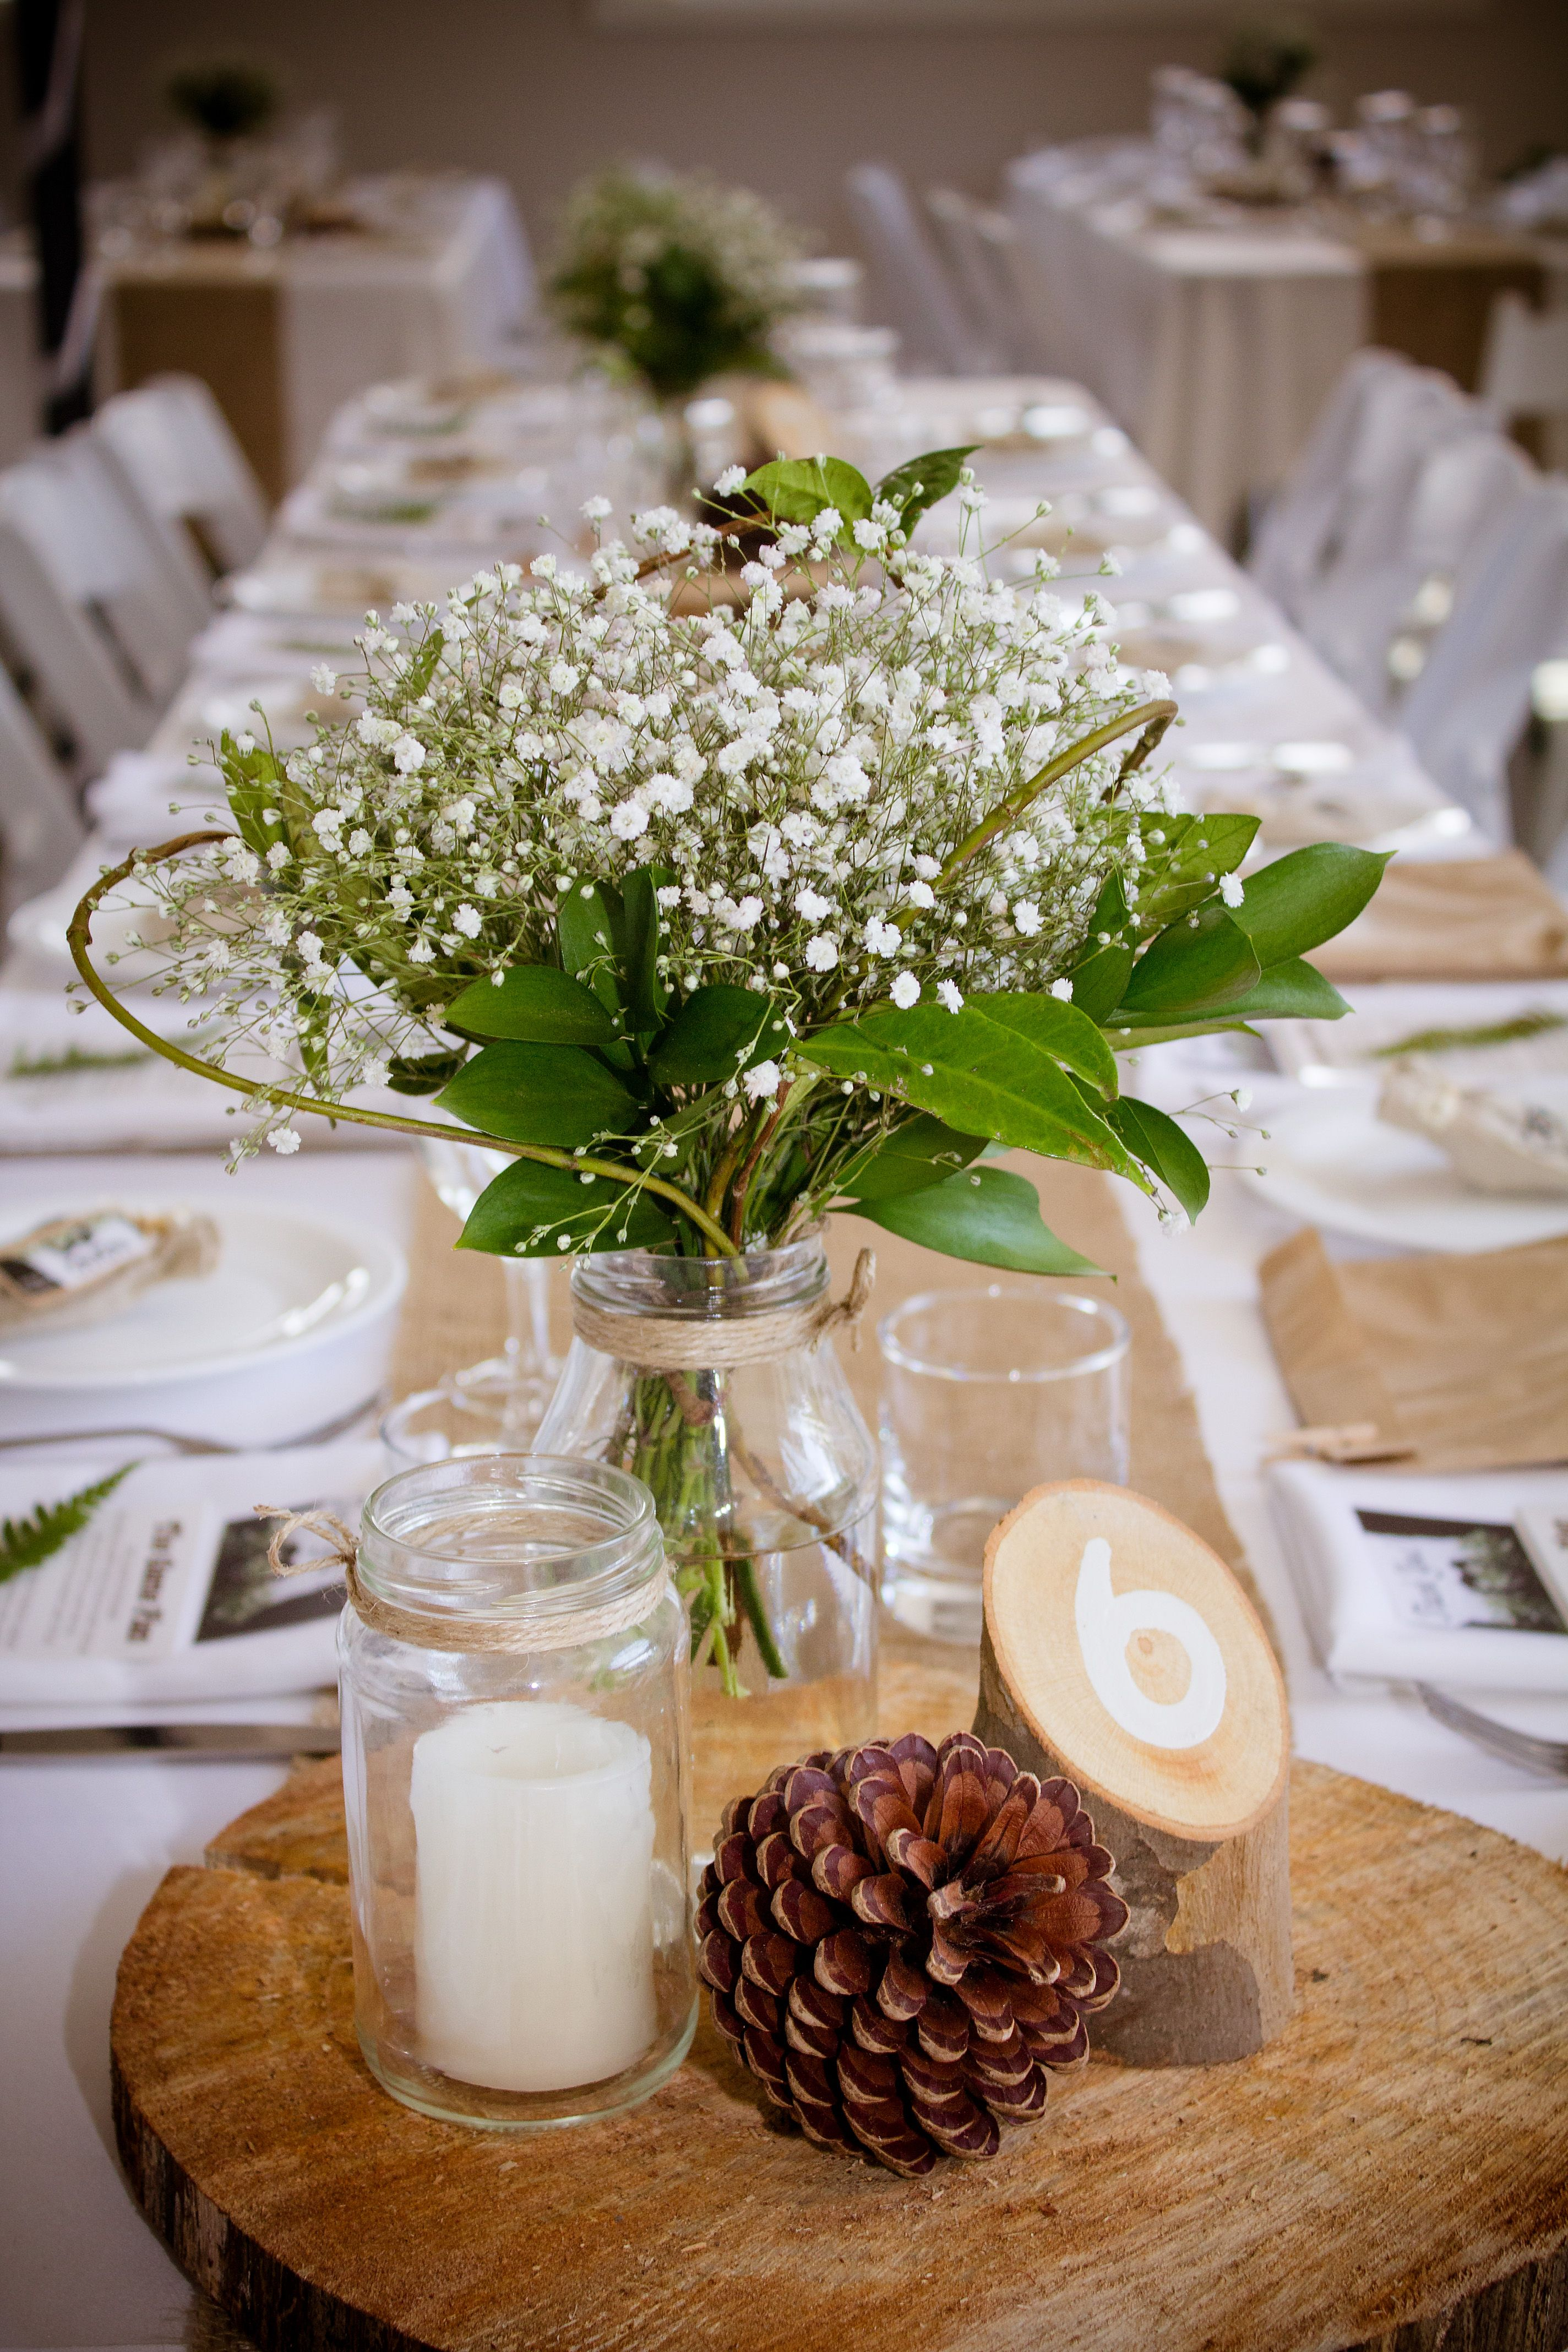 Our Simple Rustic Table Setting Reception Simple Table Settings Wedding Table Settings Table Arrangements Wedding